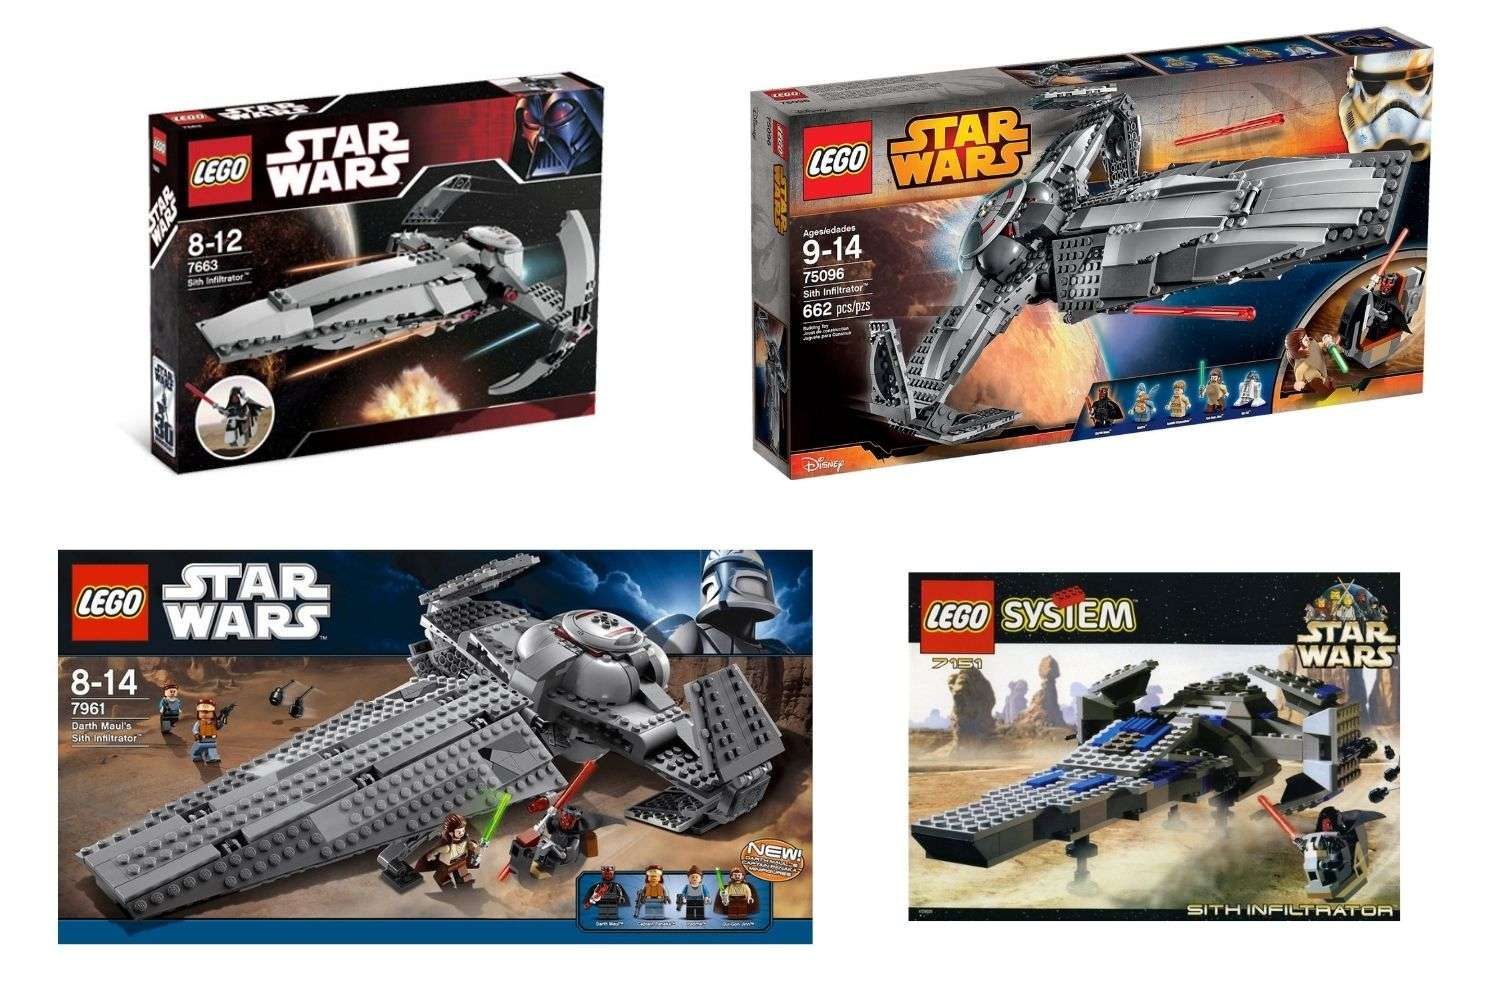 LEGO Star Wars Sith Infiltrator Sets